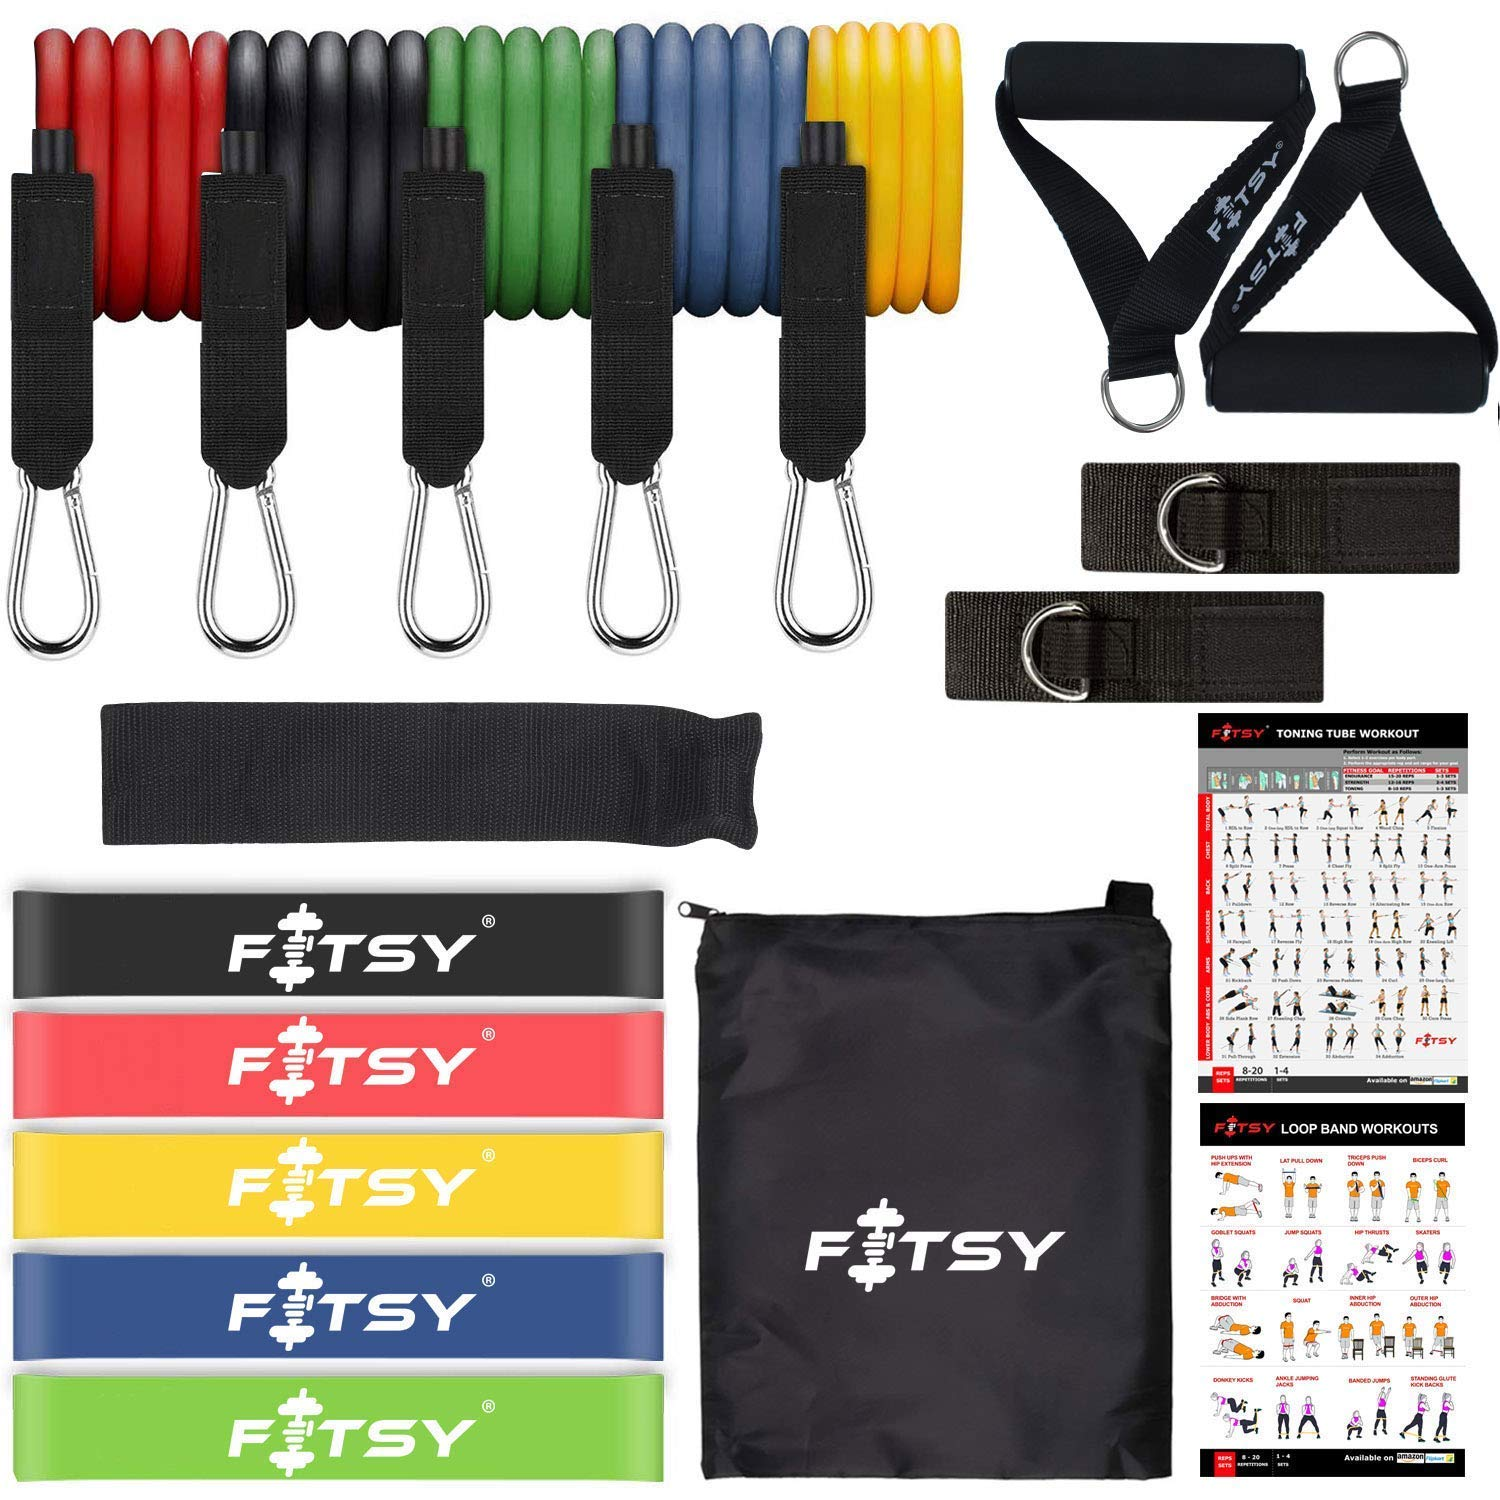 Fitsy resistance bands